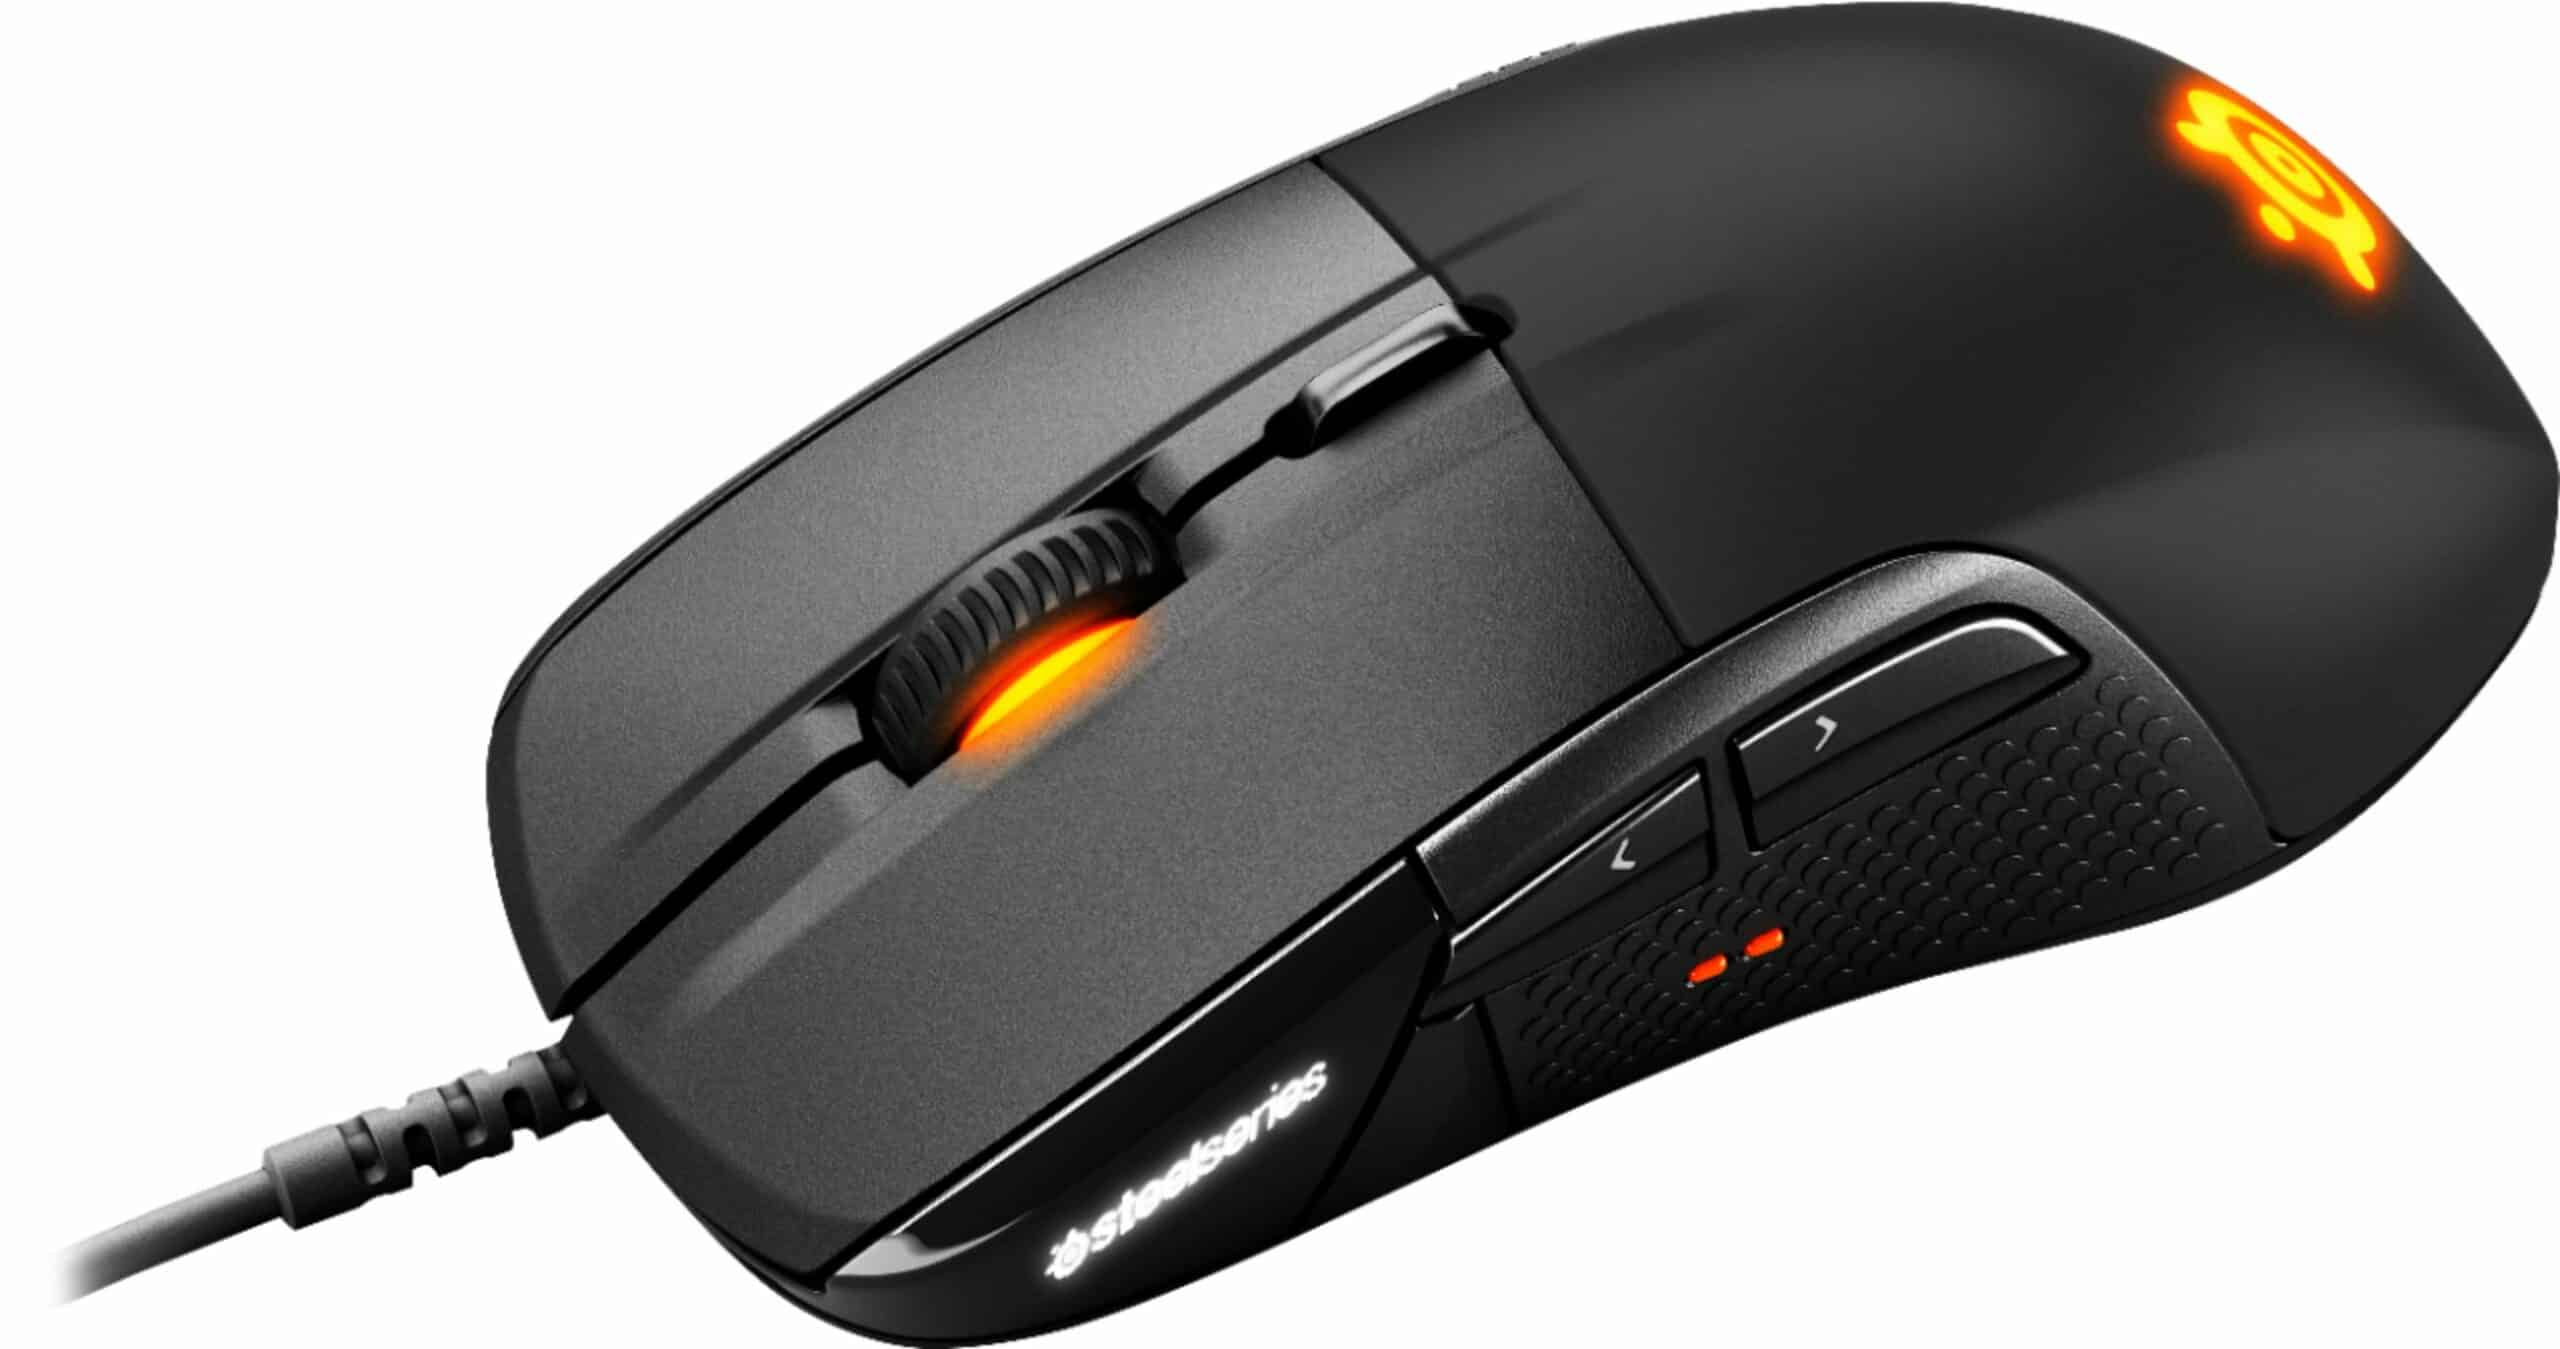 SteelSeries-Rival-710